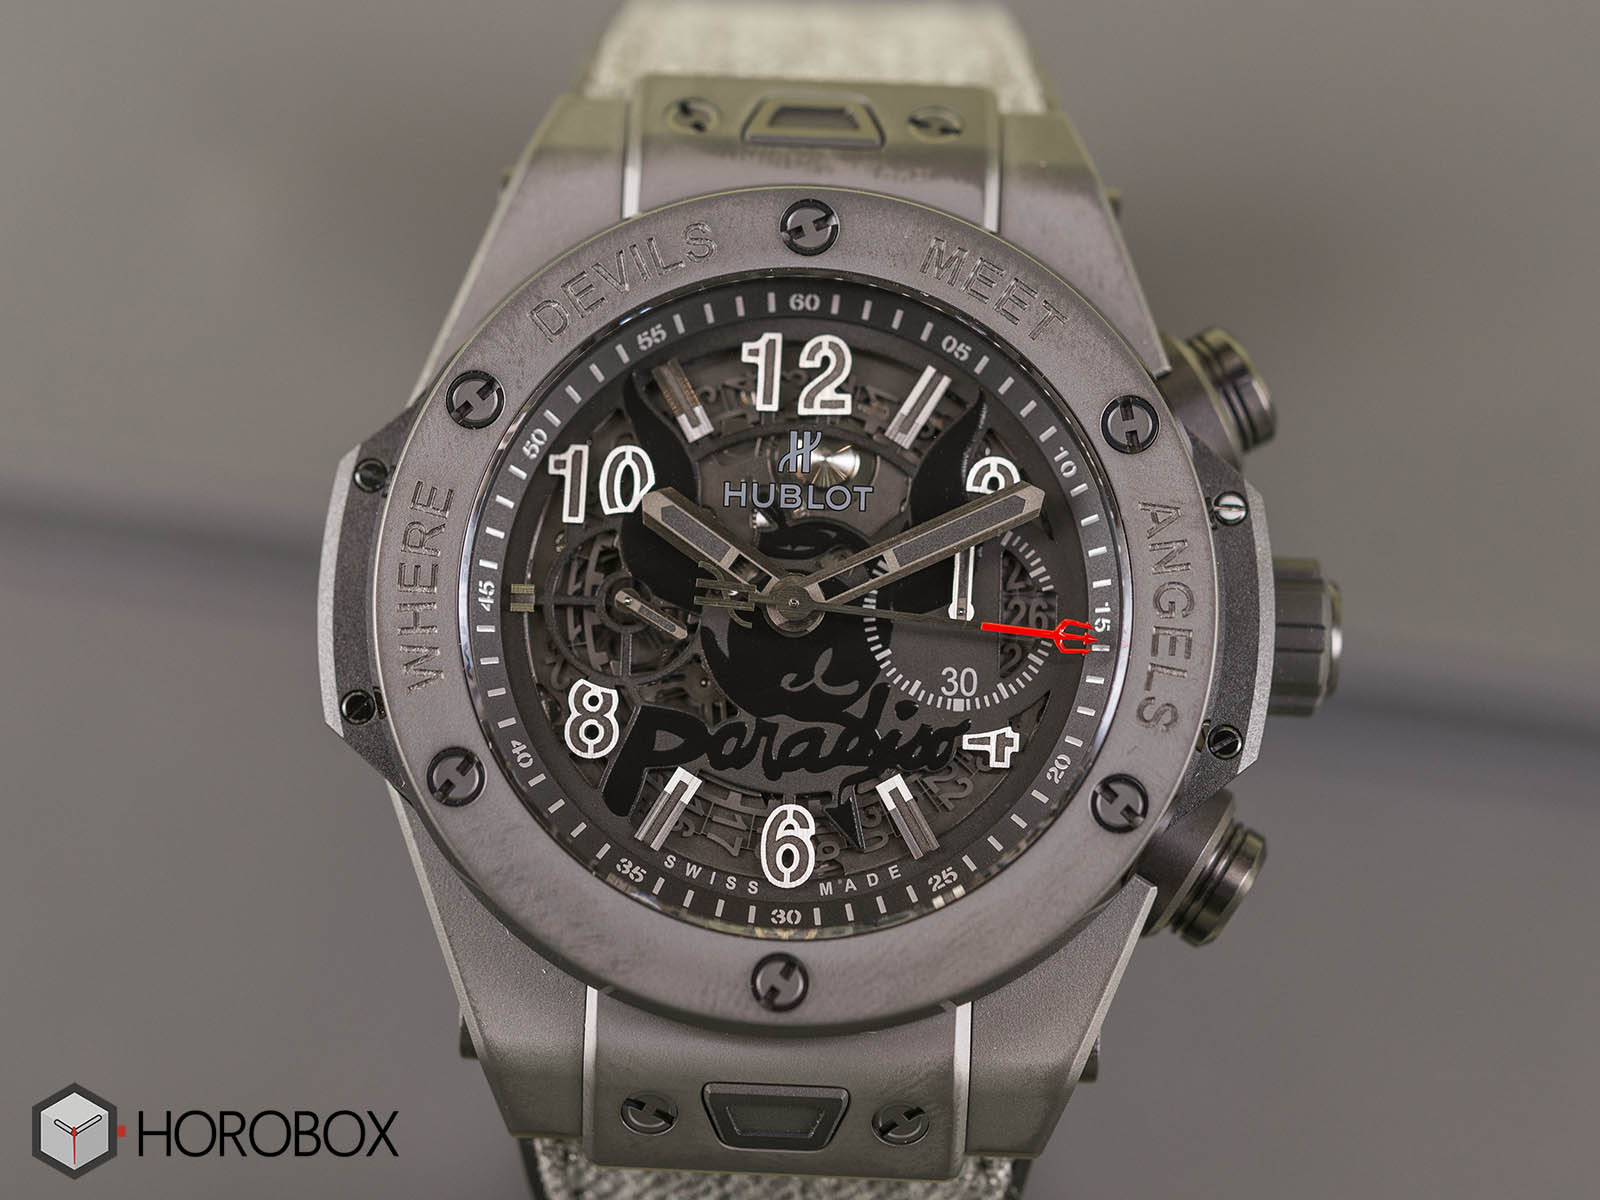 hublot-big-bang-unico-el-paradiso-7.jpg